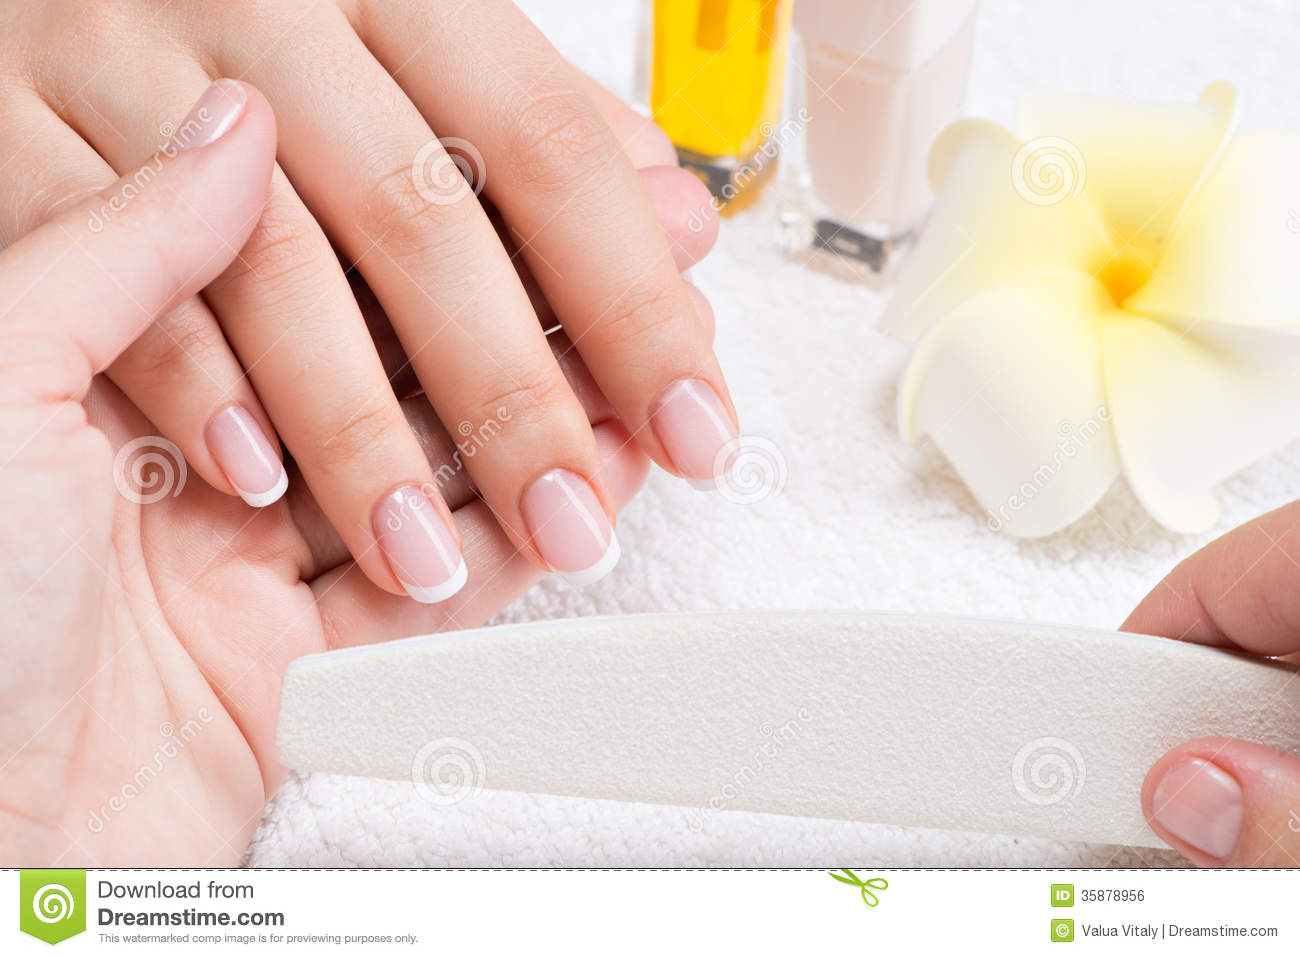 Woman In A Nail Salon Receiving Manicure Stock Photo - Image of hand ...